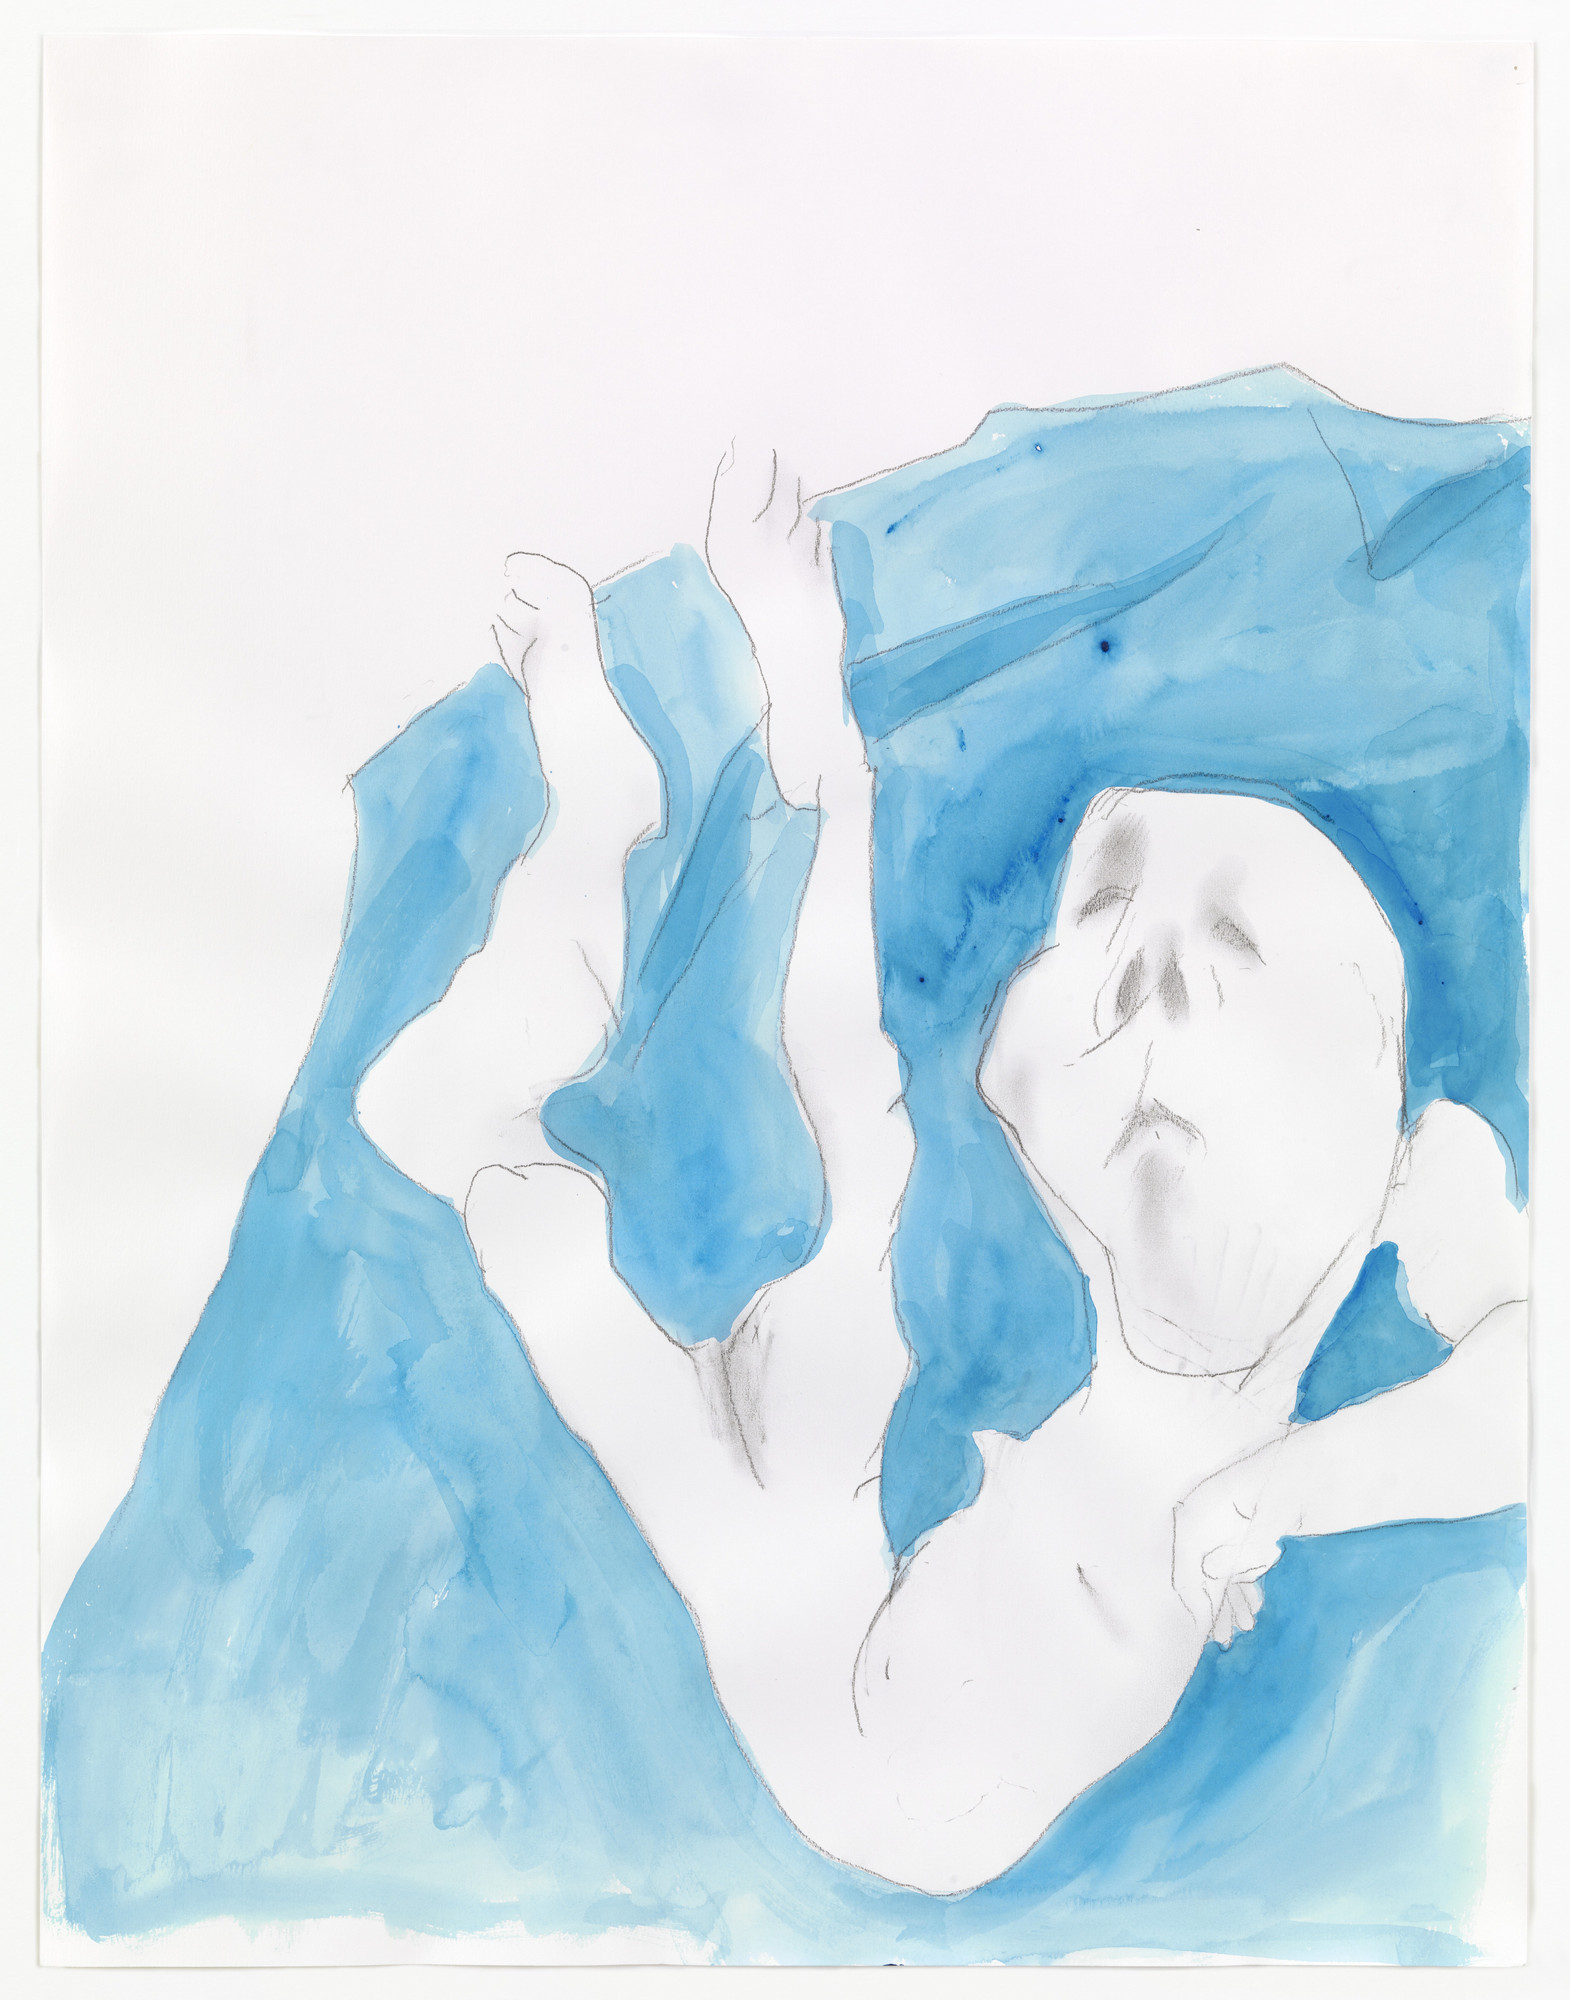 Maria Lassnig. Untitled. 1998-2001